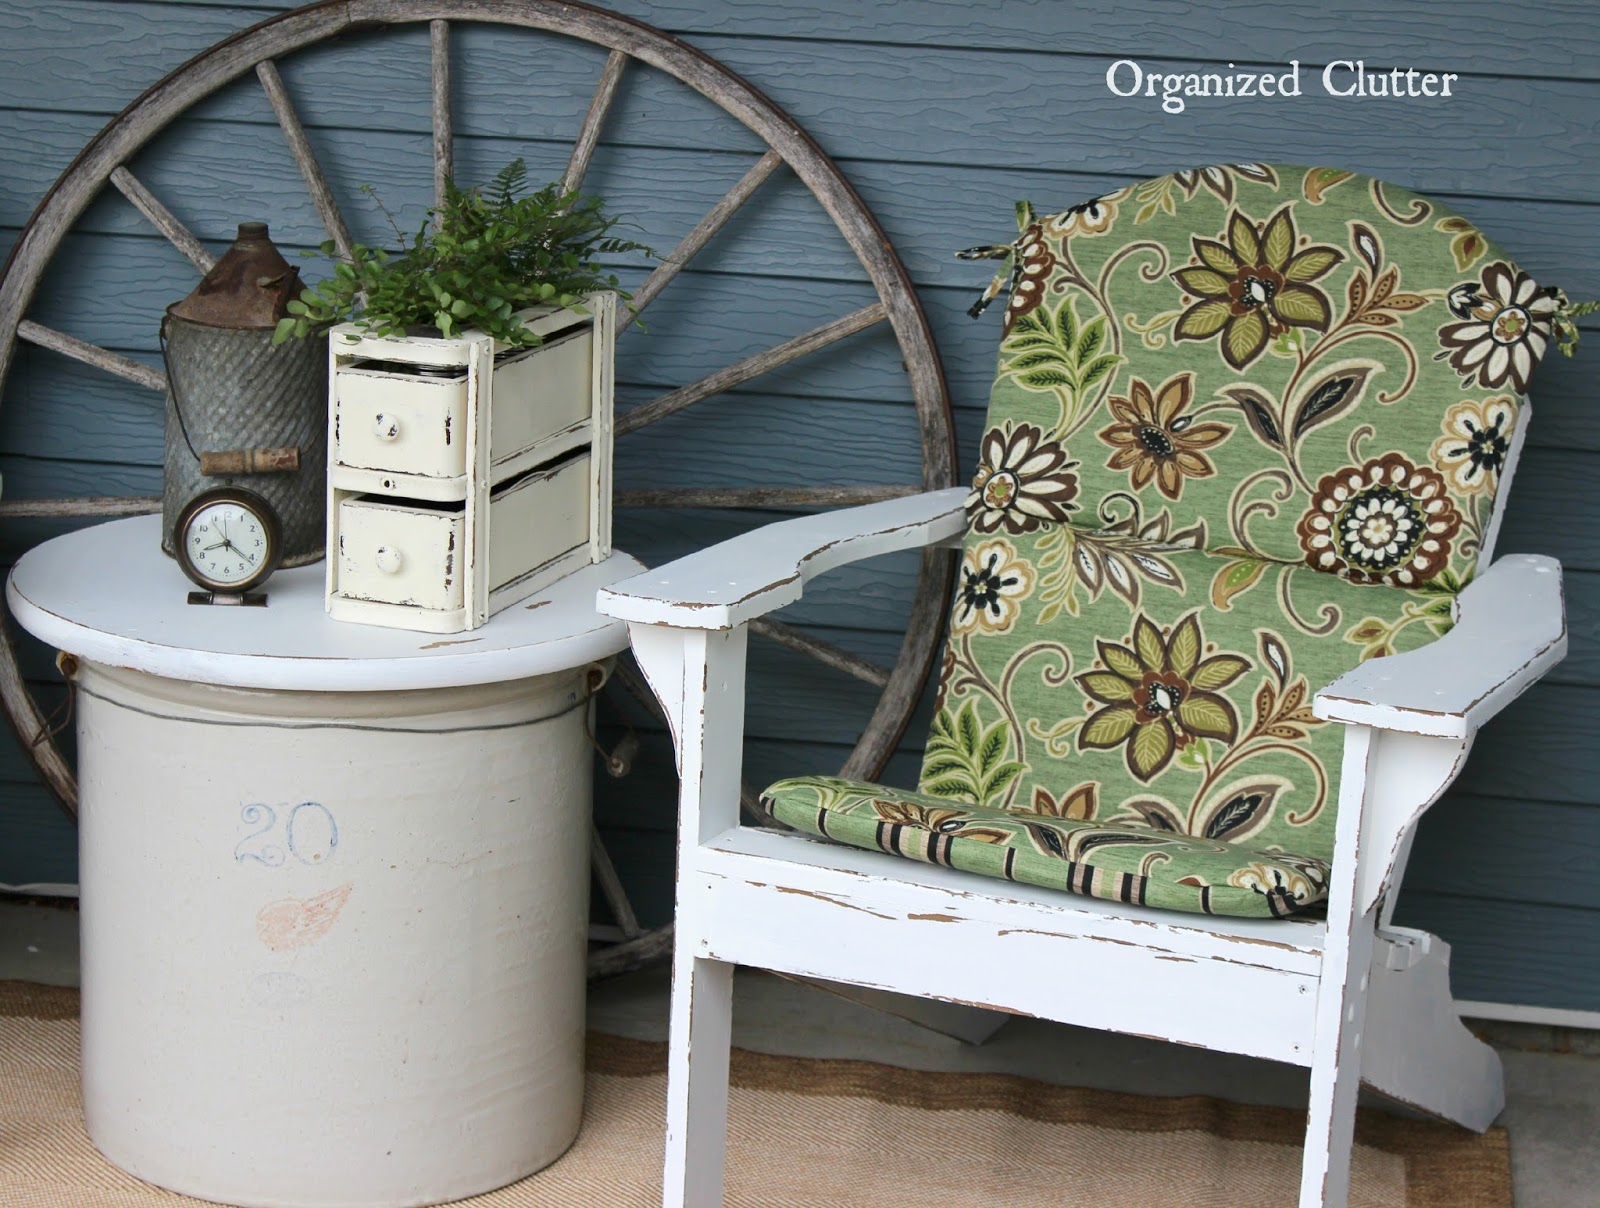 Awesome Adirondacks on the Covered Patio organizedclutter net